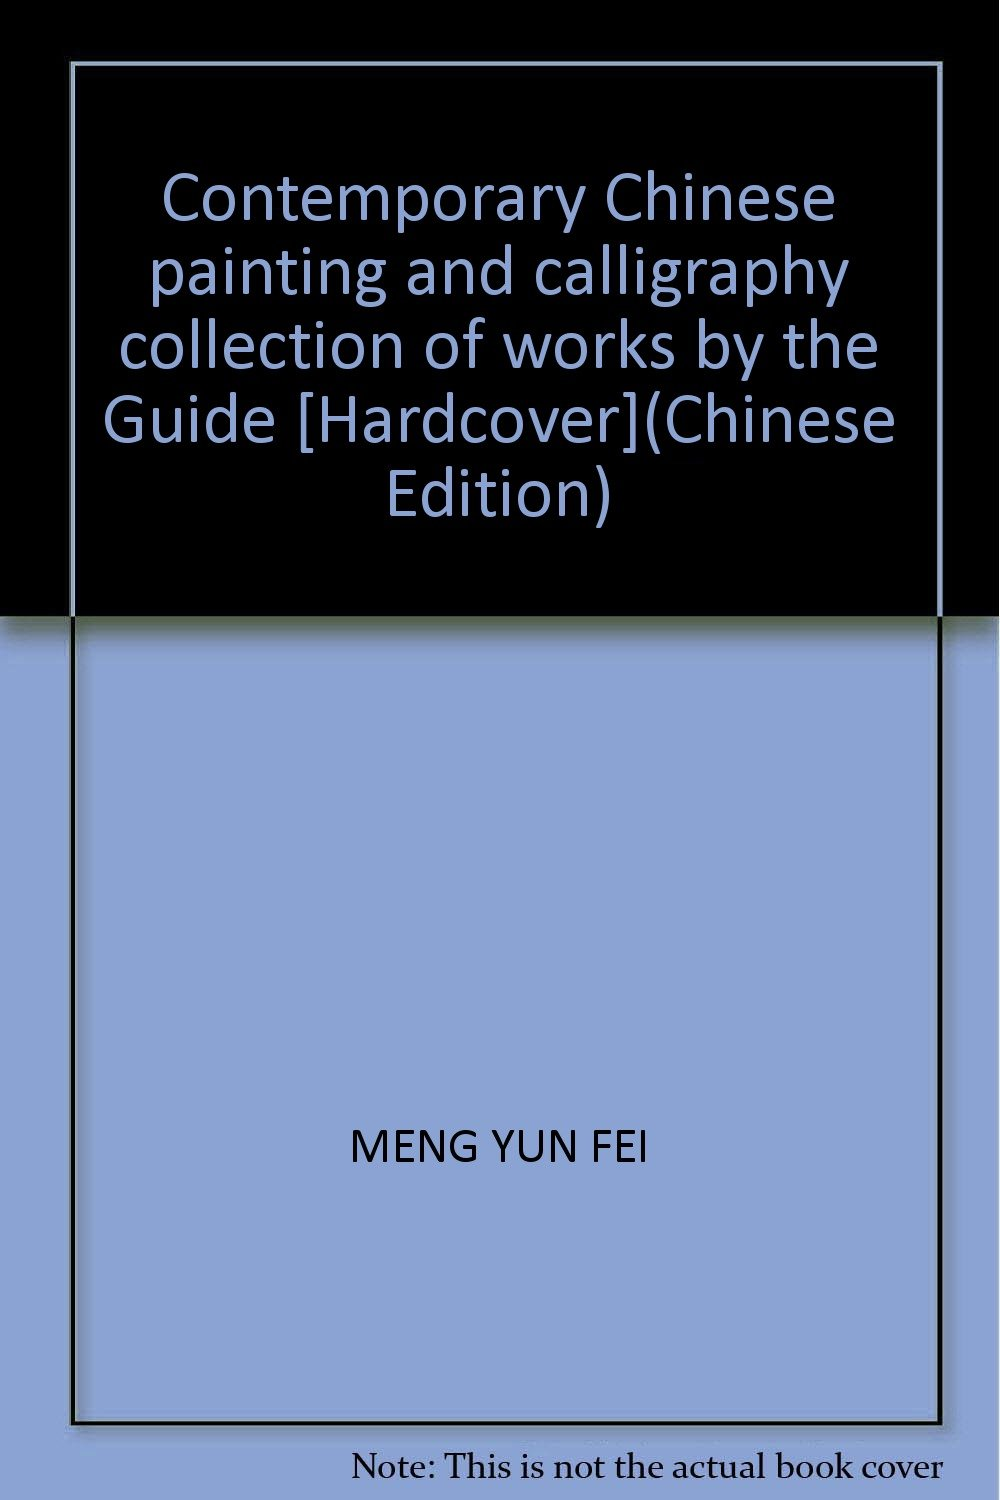 Download Contemporary Chinese painting and calligraphy collection of works by the Guide [Hardcover](Chinese Edition) PDF